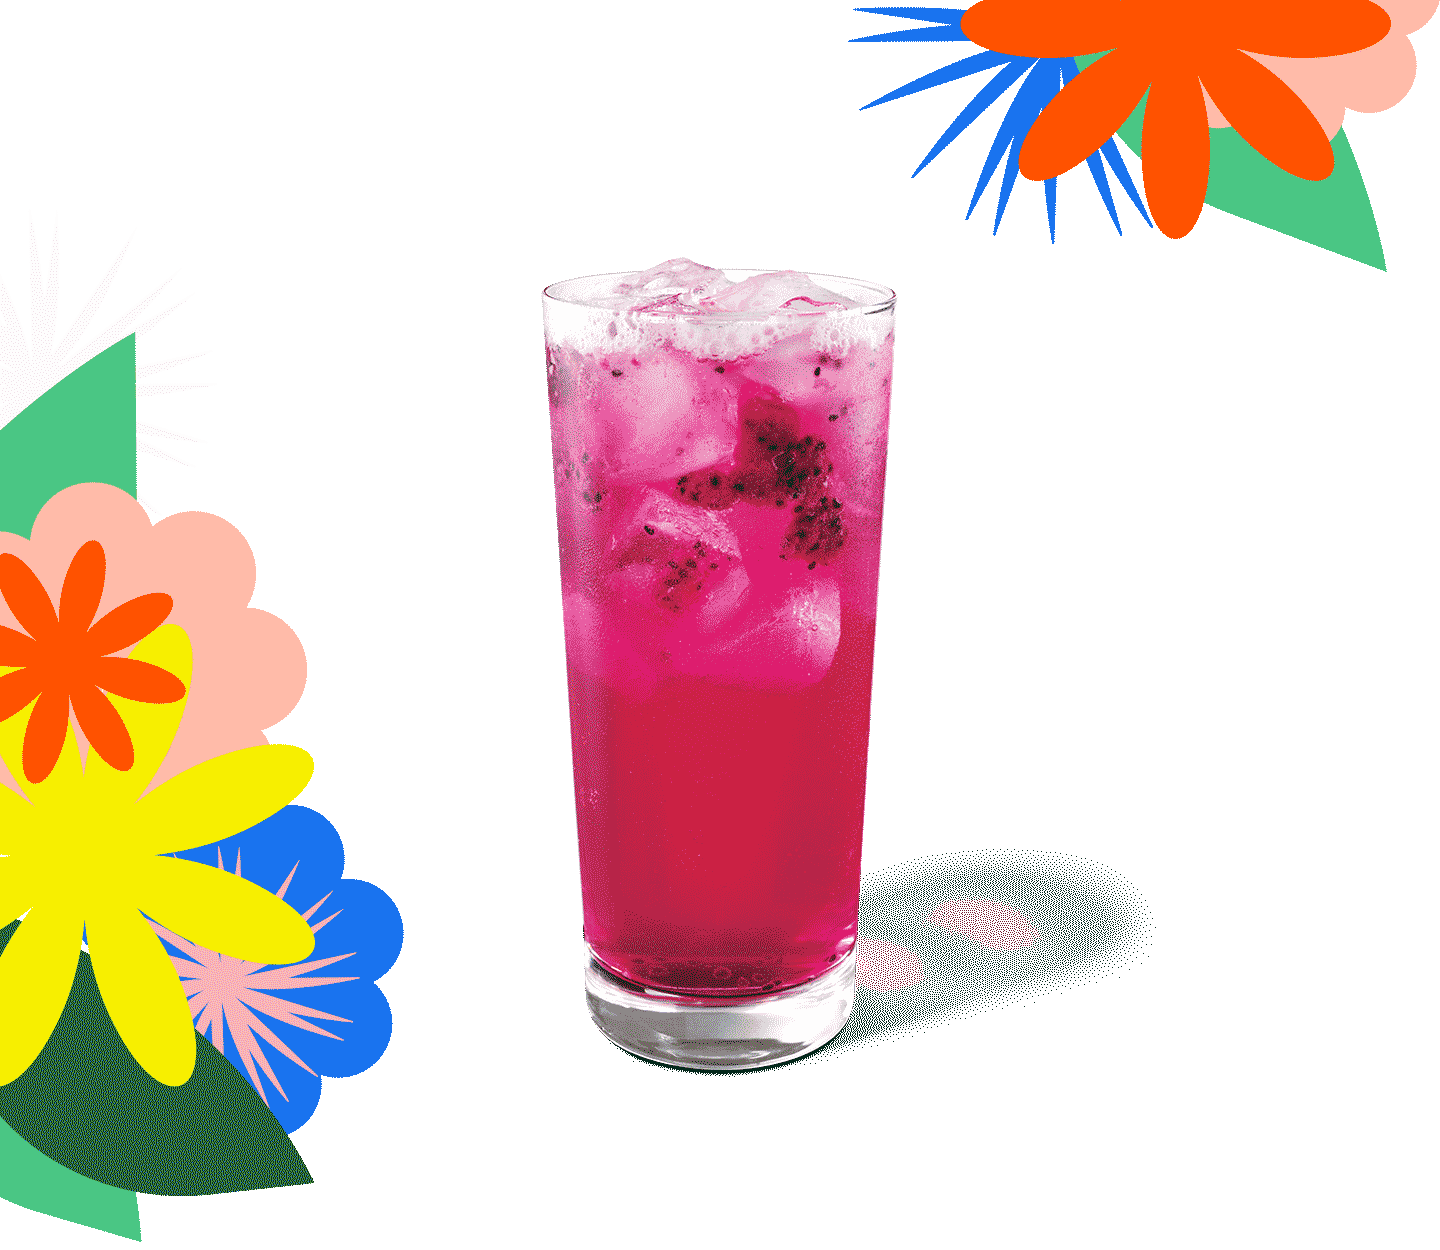 A bright pink beverage with dragonfruit pieces in a tall, thin glass.